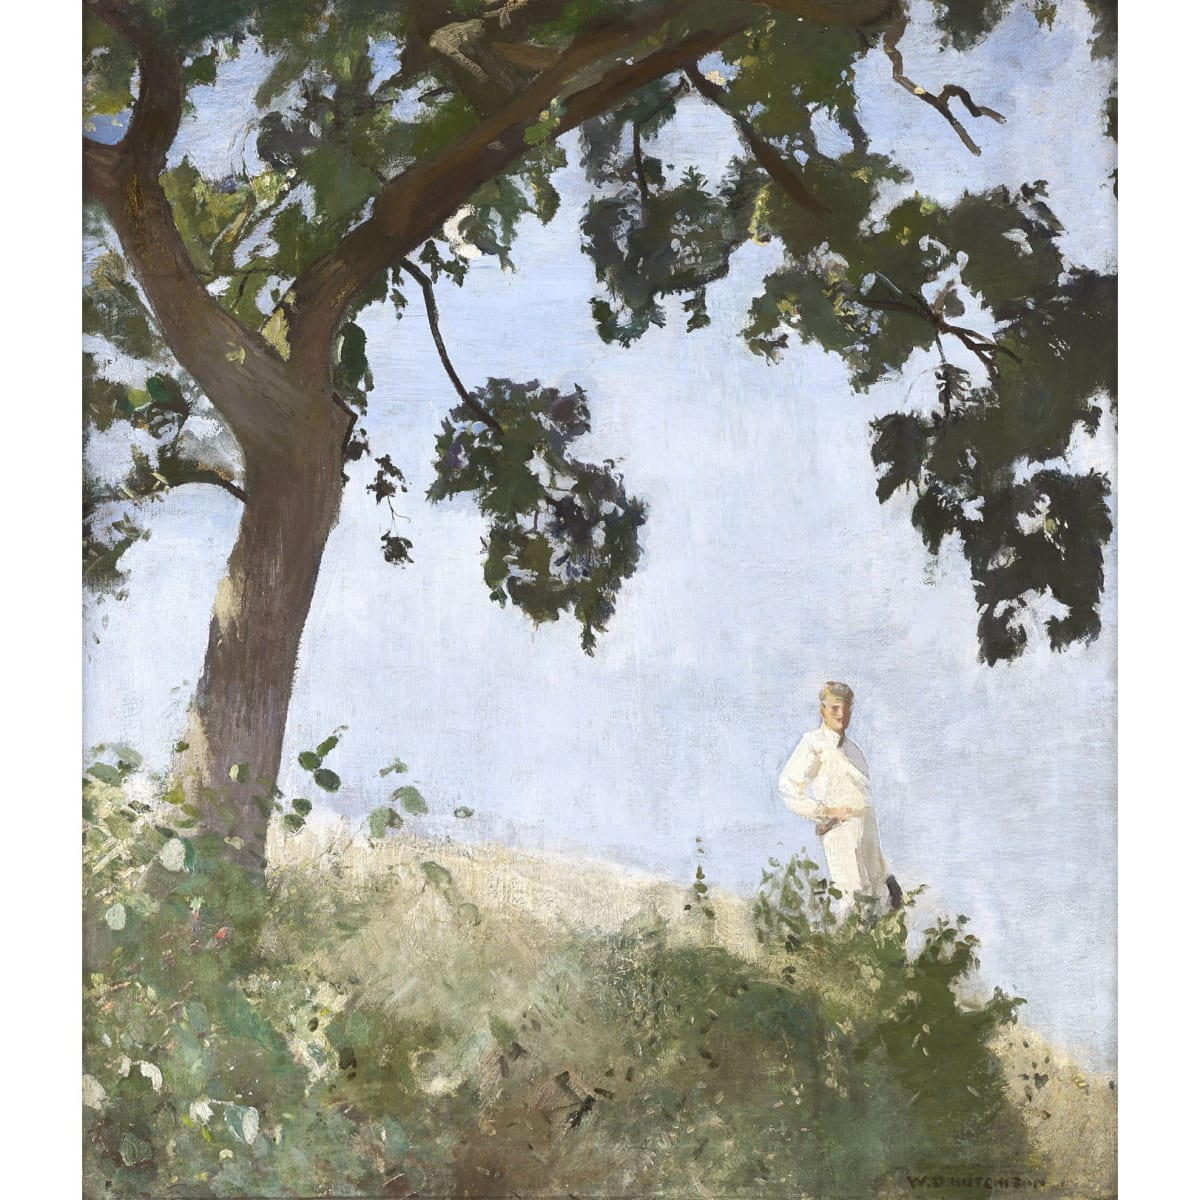 Sir William Oliphant Hutchison Arthur Walton Under the Oak Tree, 1914 signed; signed, dated 1914 and inscribed 'The Oak' on board verso oil on canvas laid on board 36 x 32 inches